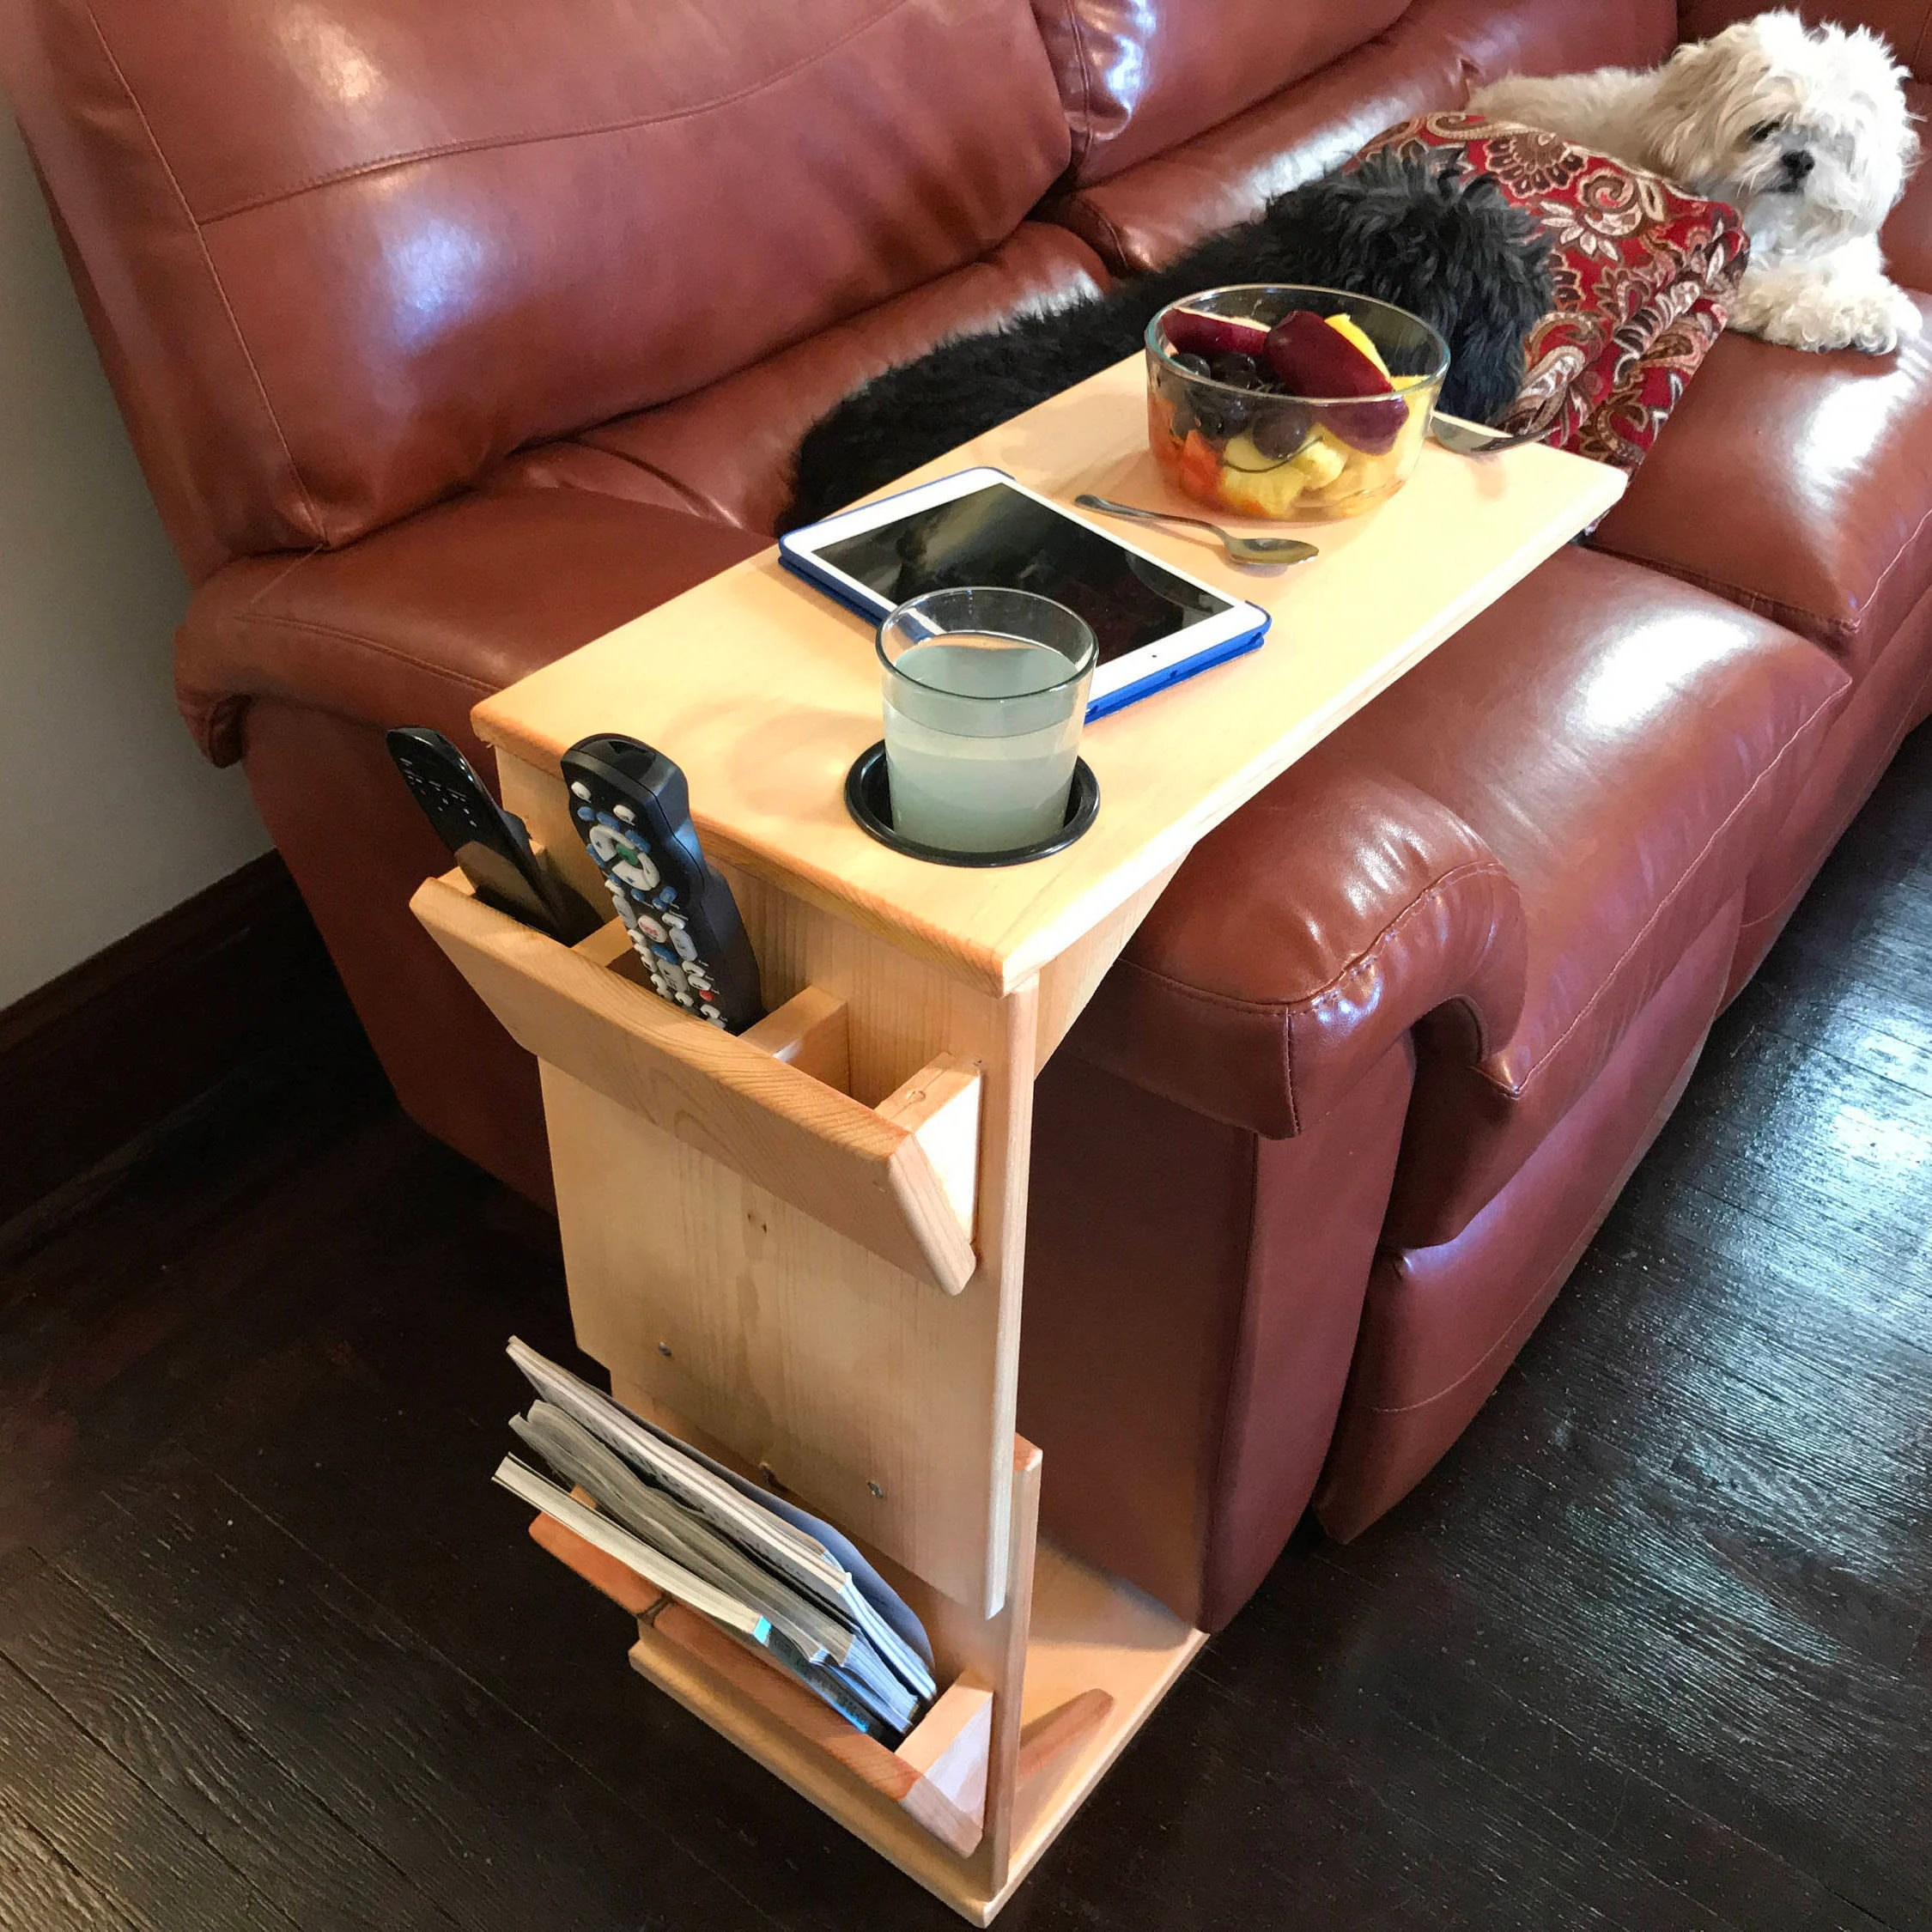 urbanite sofa online kaufen billig couch table with remote control holder tablet magazine rack